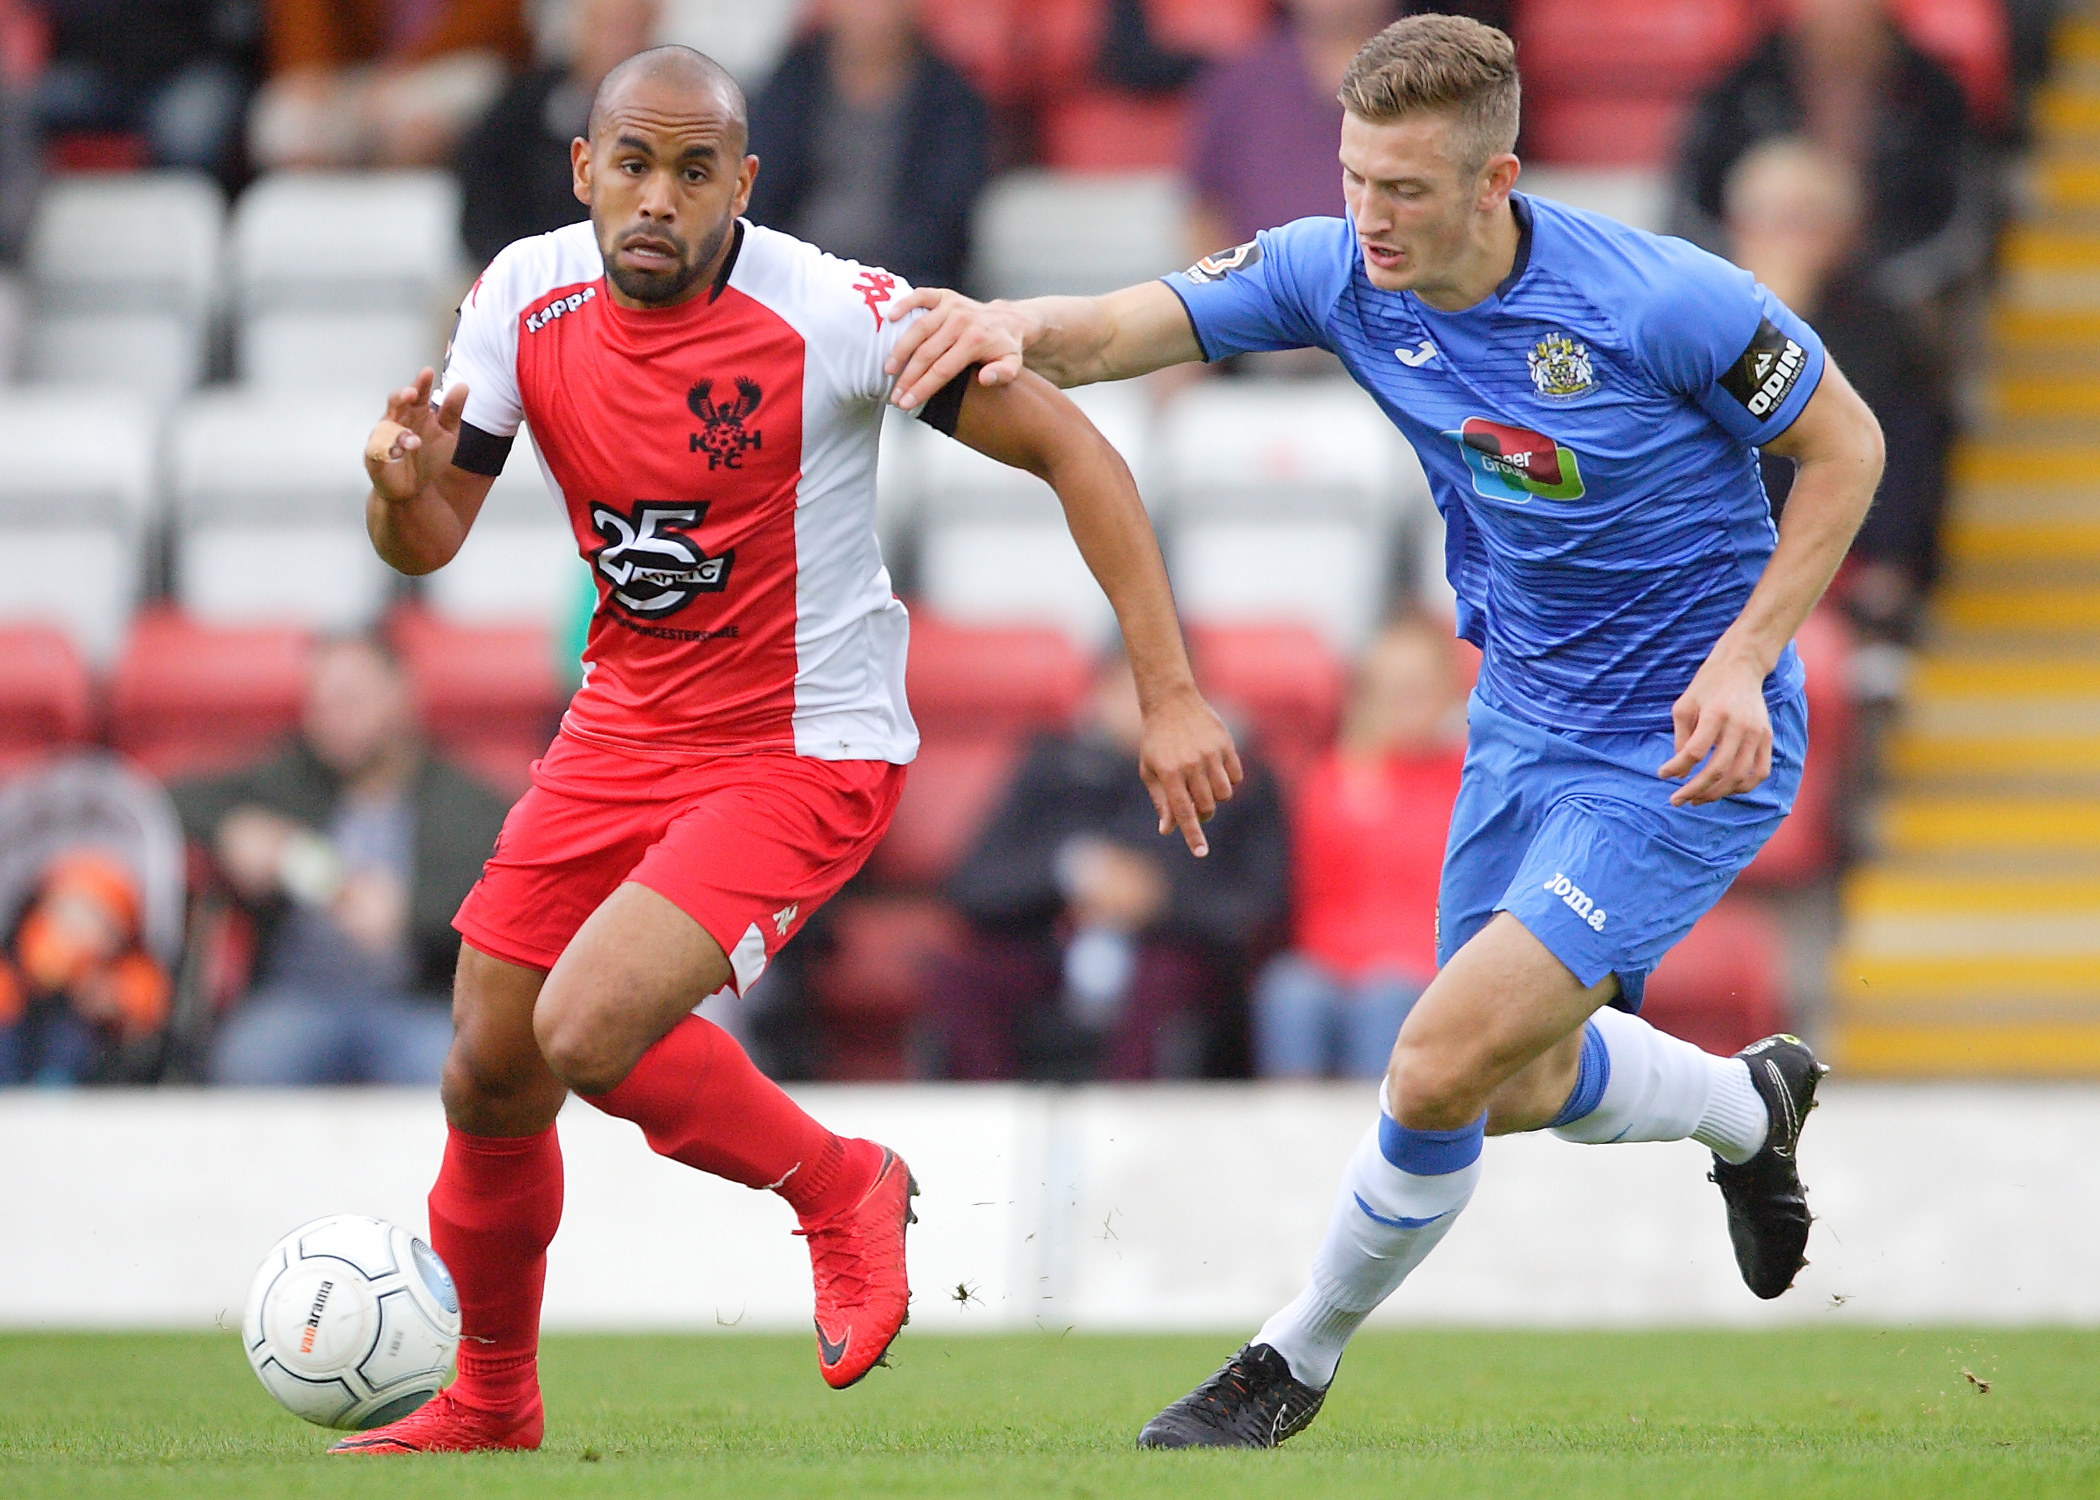 Ash Chambers, left, netted twice for Kidderminster.